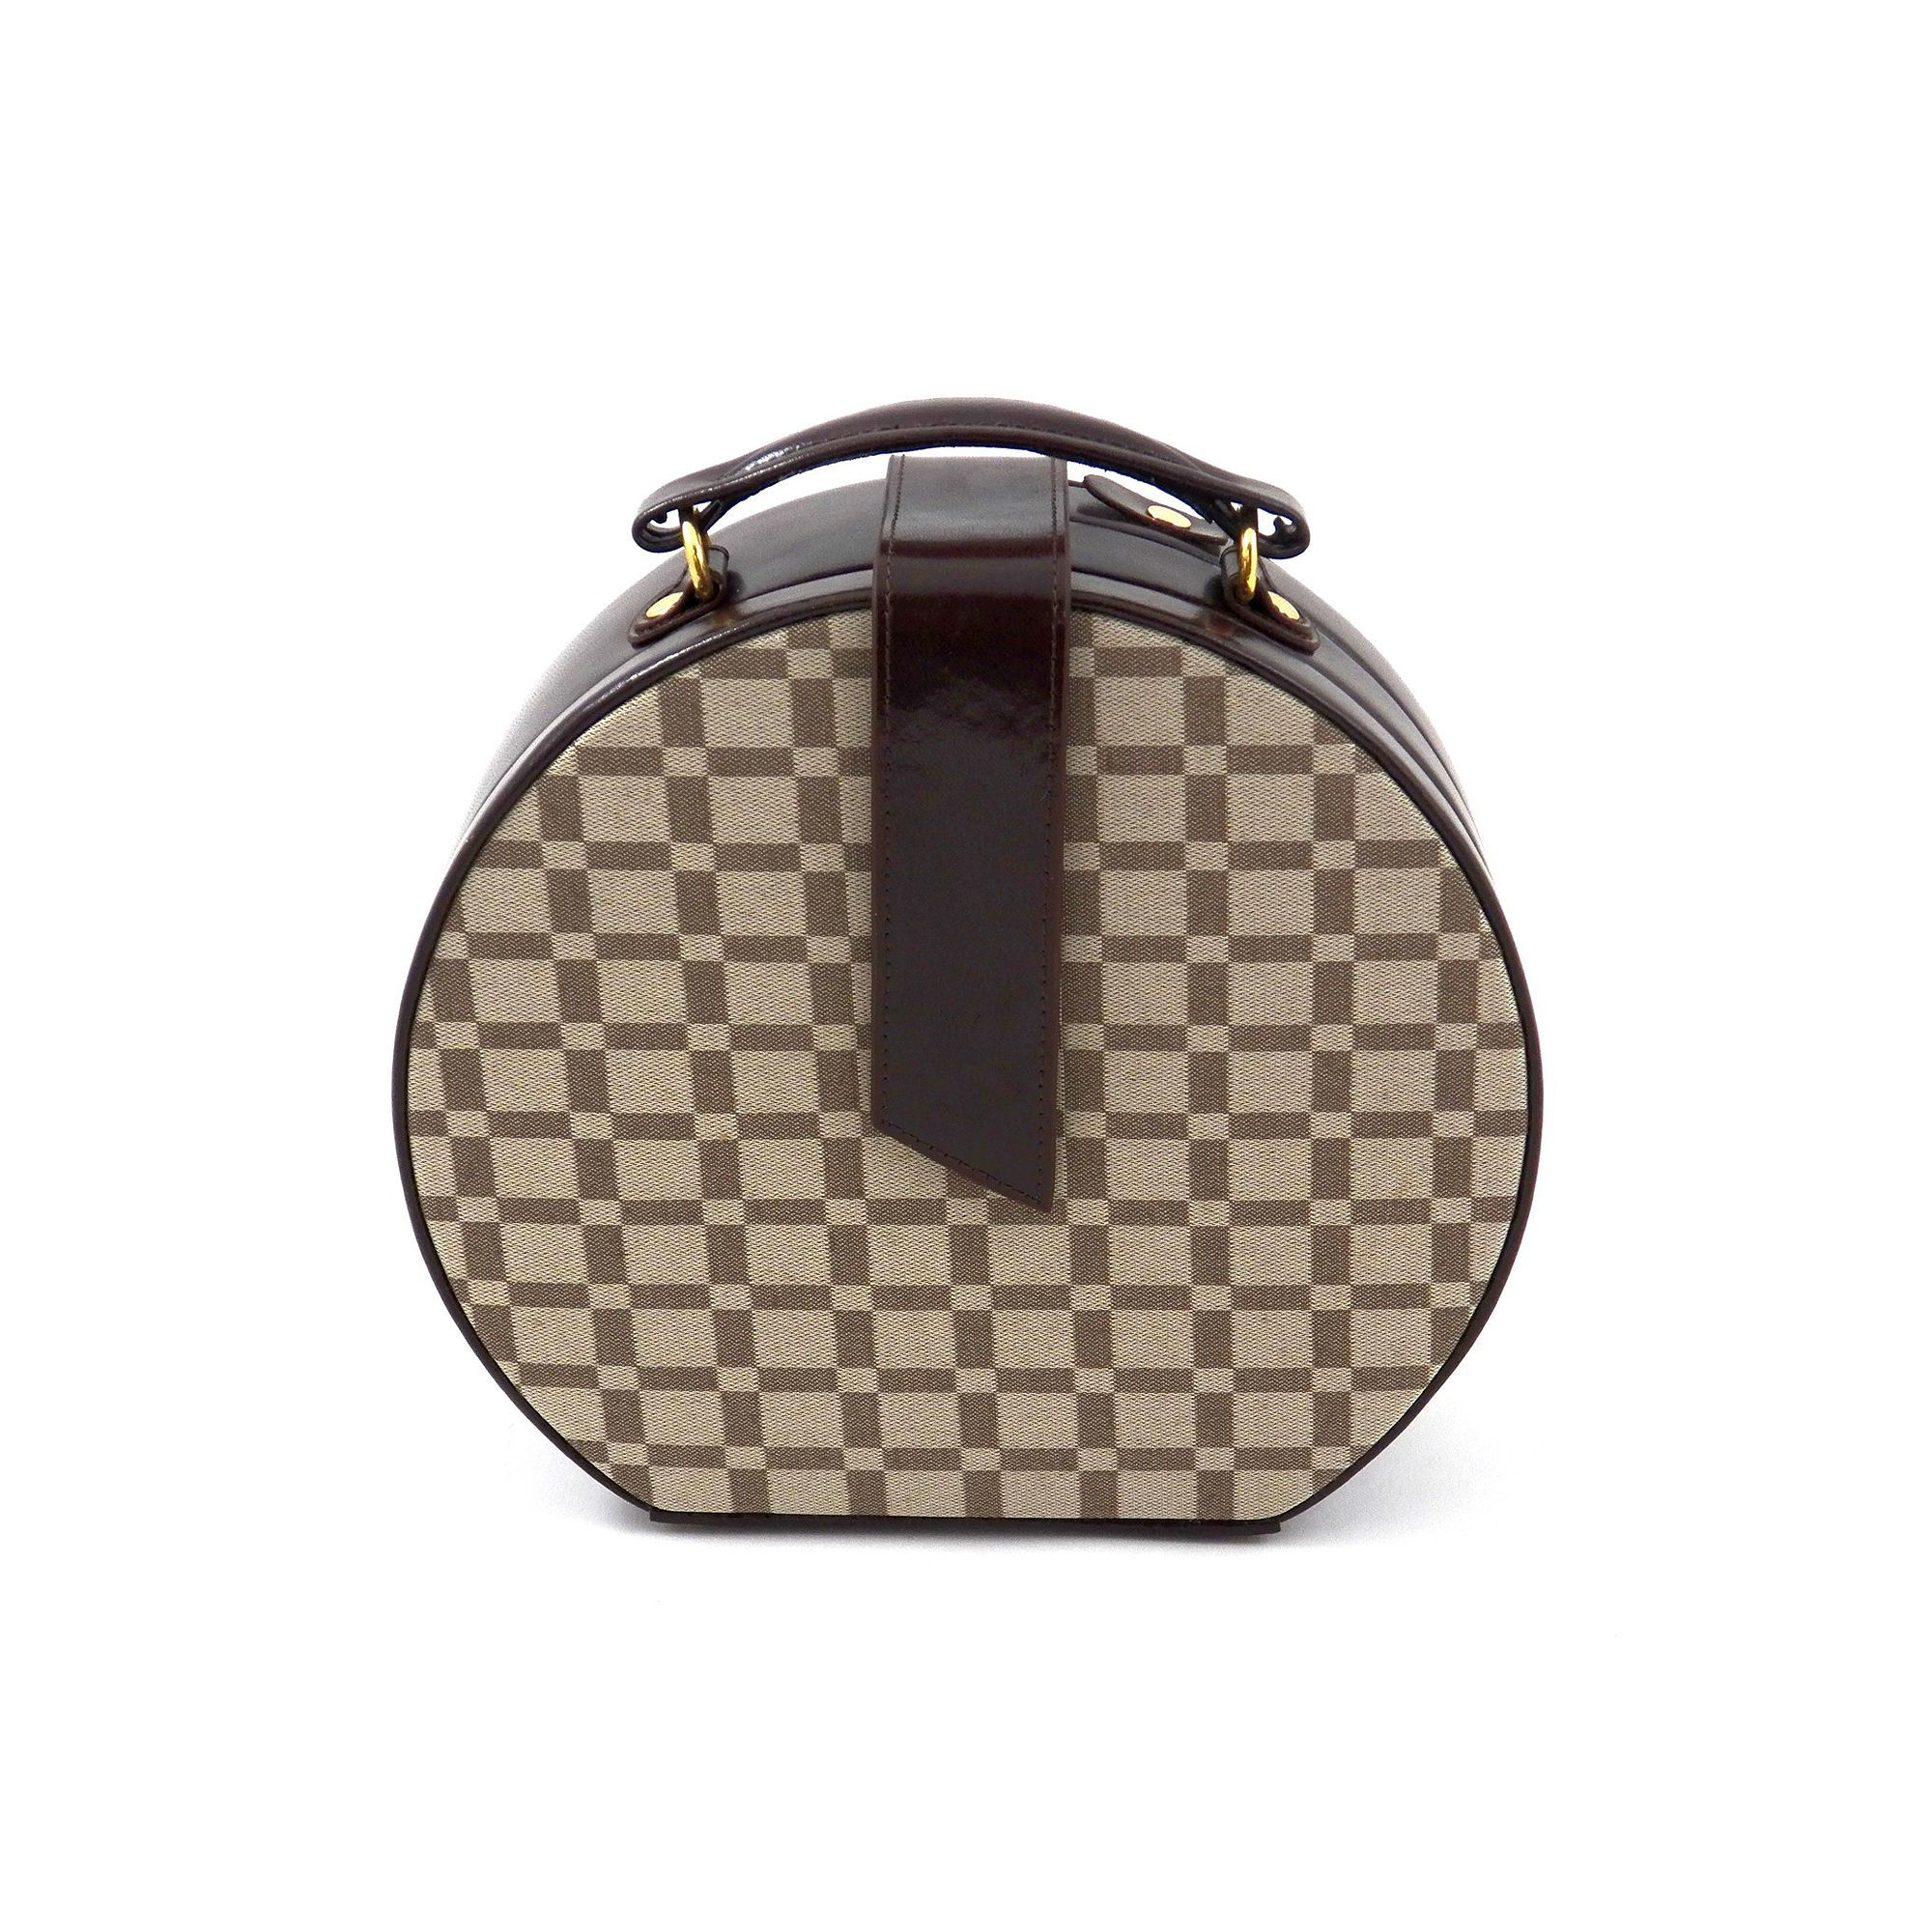 Kohls Jewelry Box Gorgeous Beyberk Brown Leather Checkered Jewelry Box And Valet Tray Set Design Inspiration